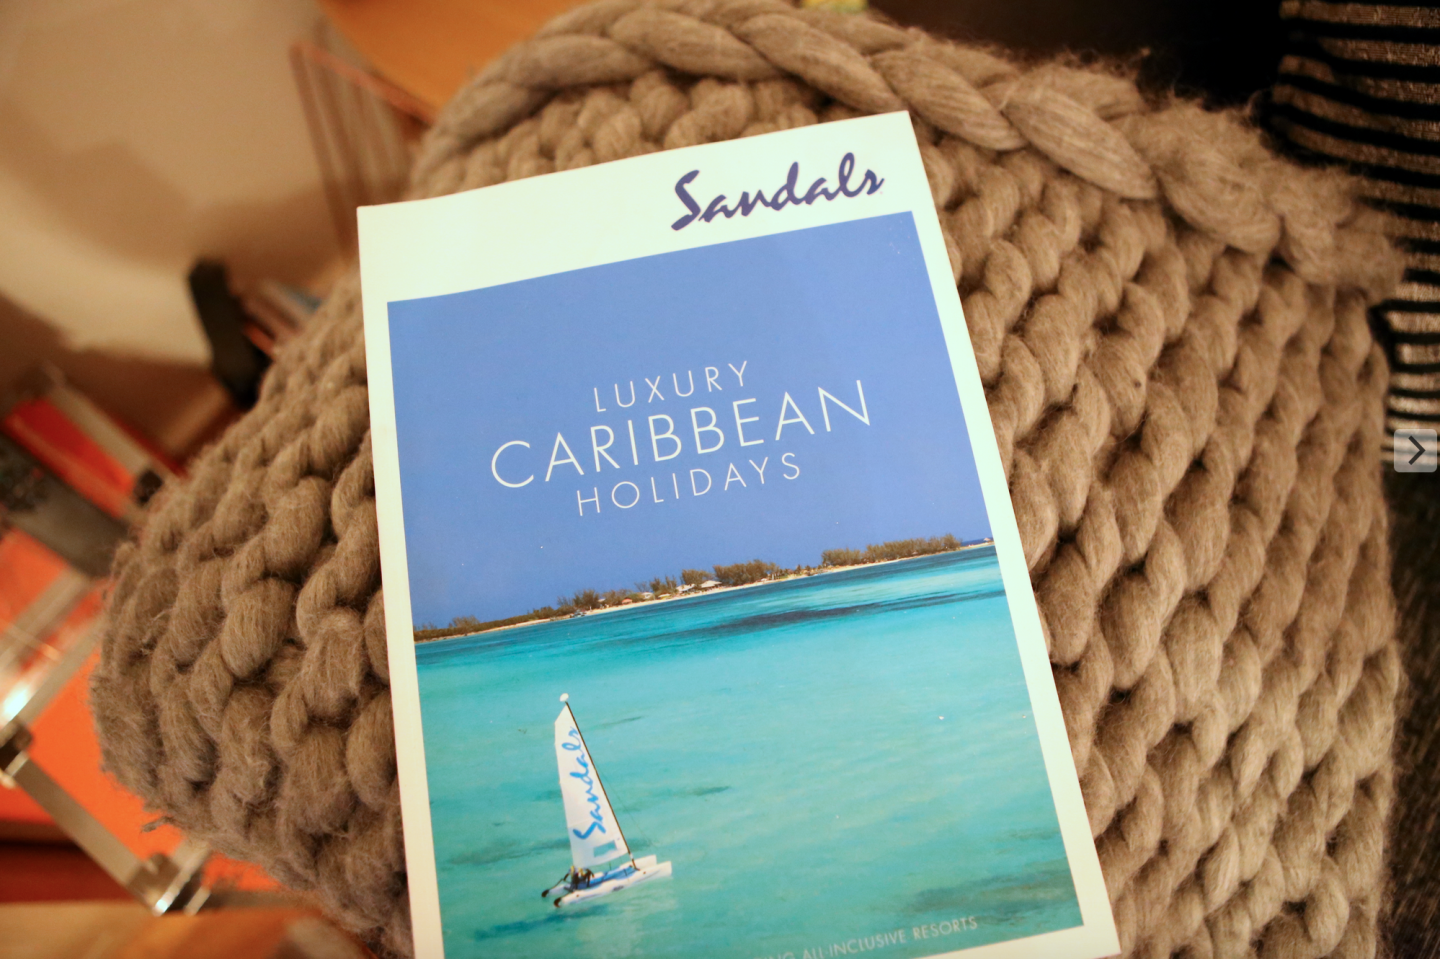 Thinking Ahead To My Sandals Resort Visit